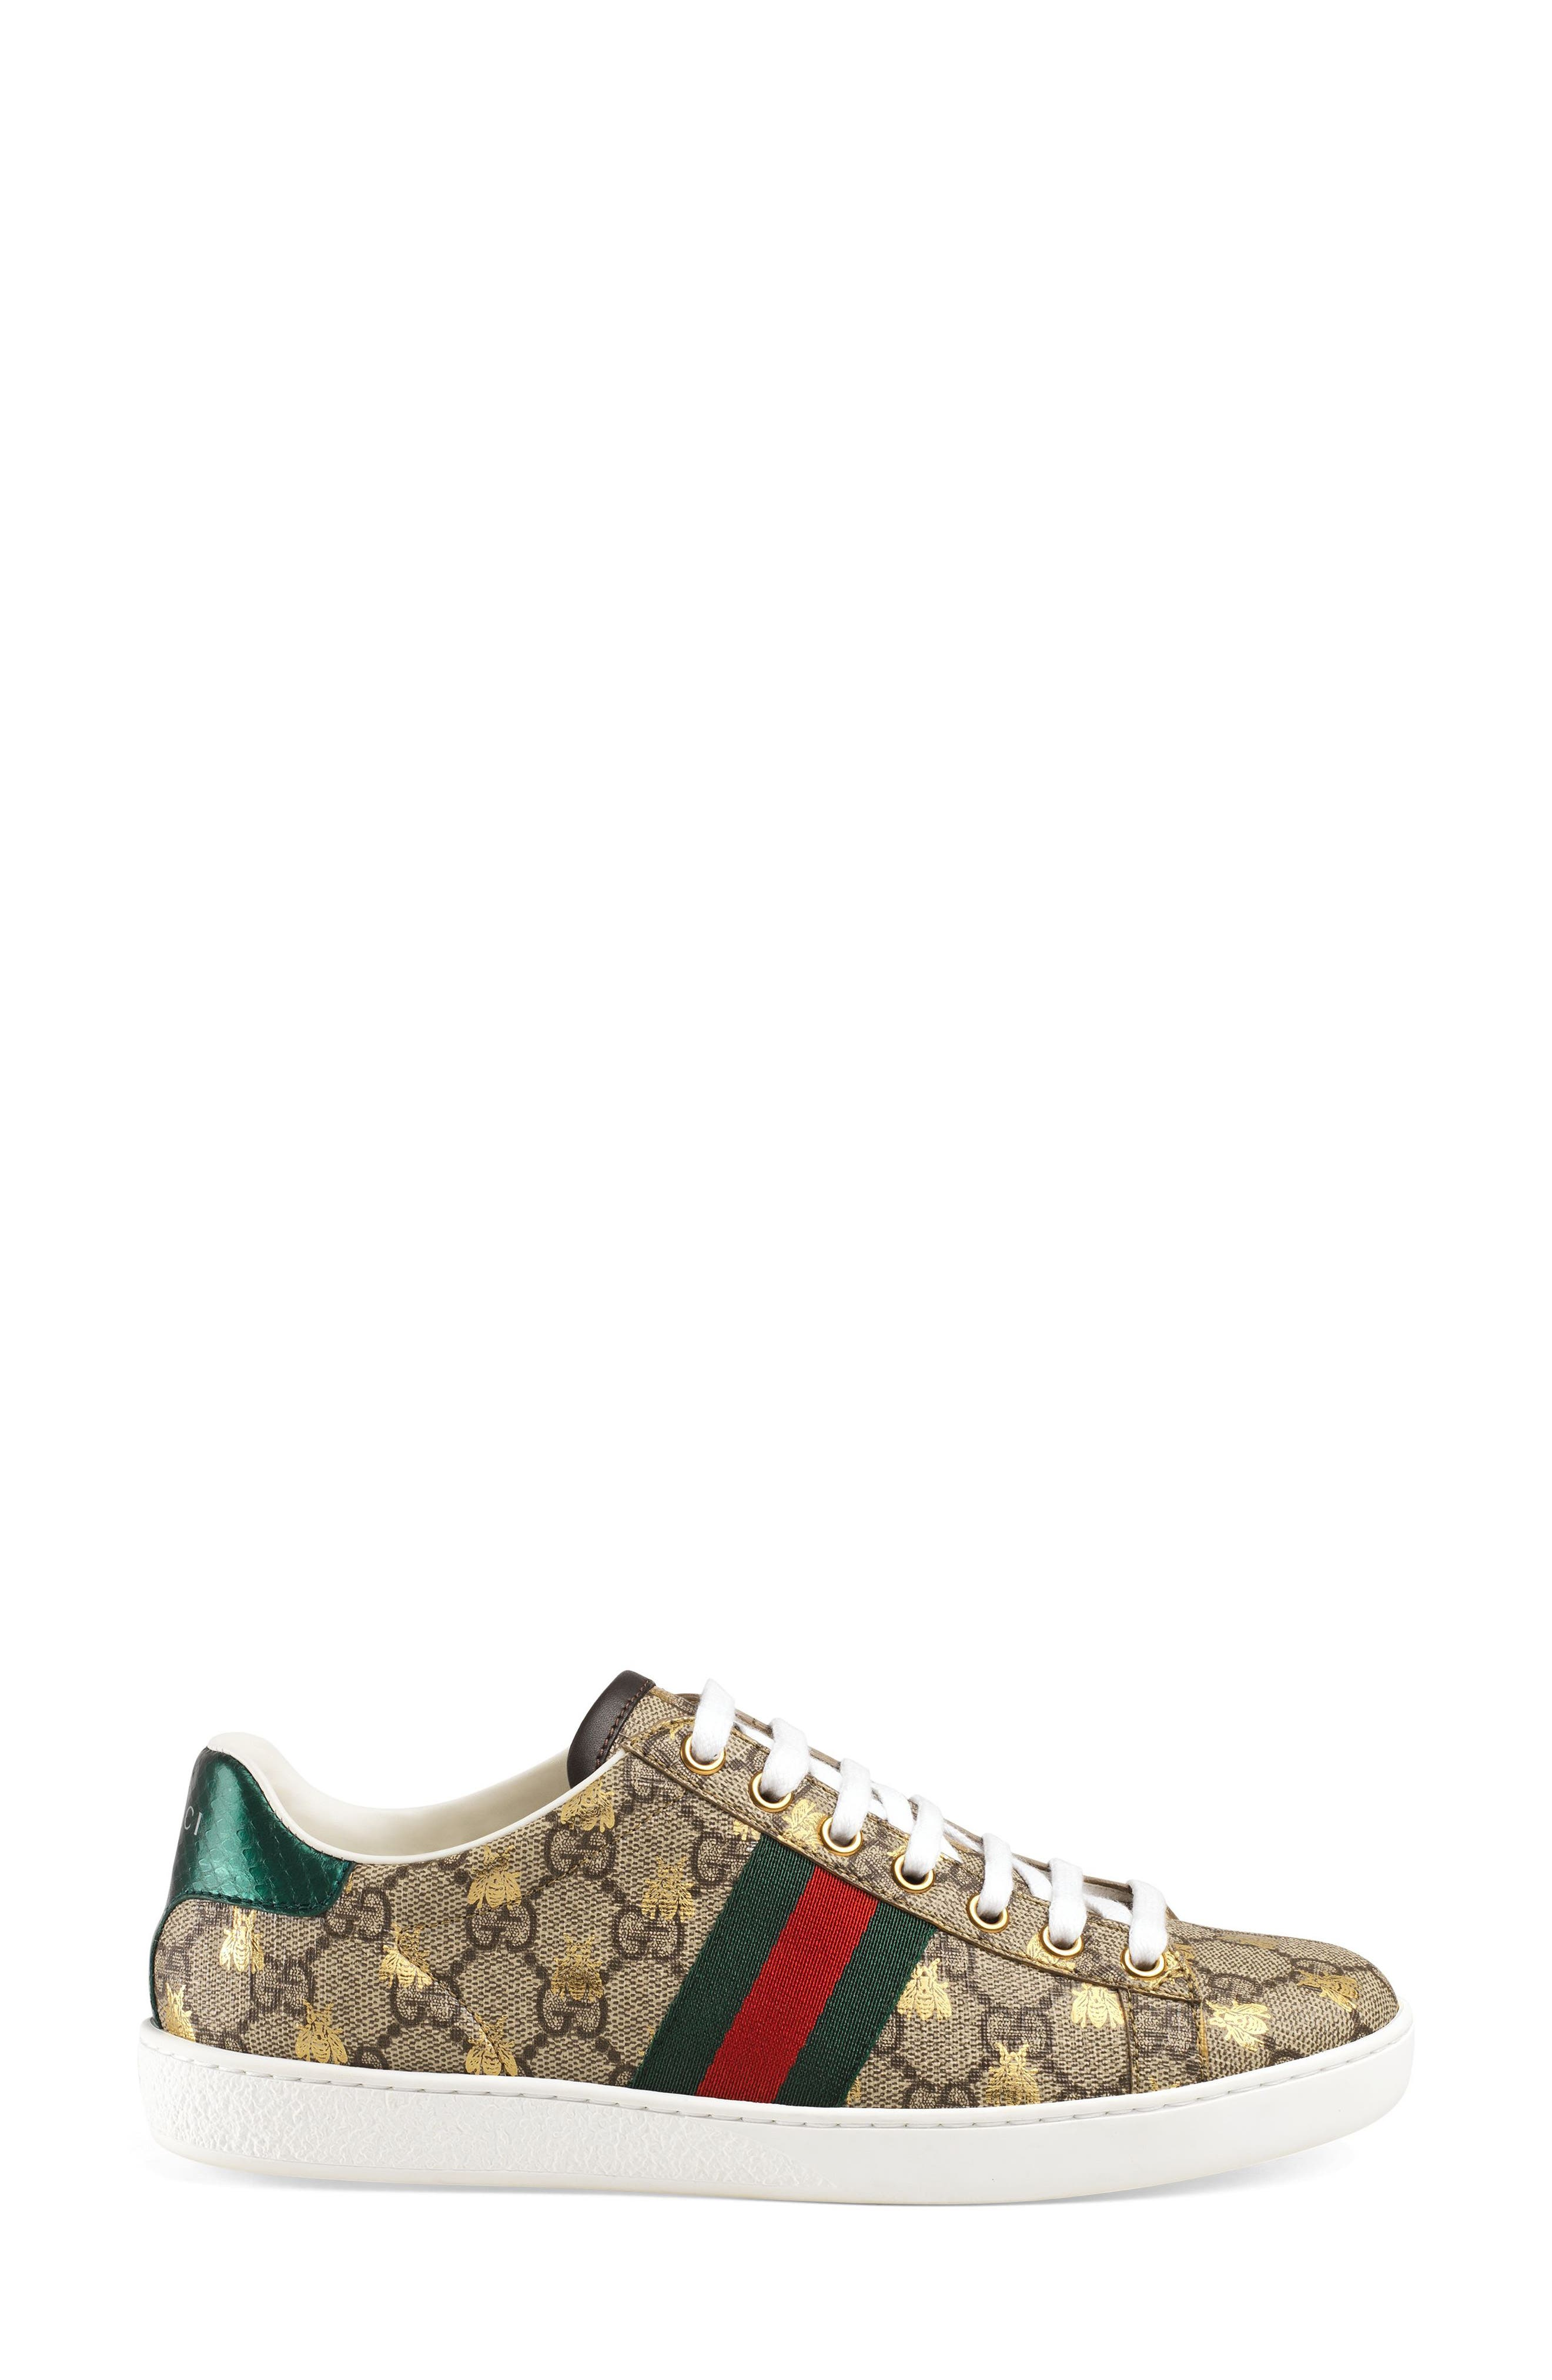 GUCCI, New Ace Monogram Bee Sneaker, Alternate thumbnail 2, color, BEIGE/ GOLD